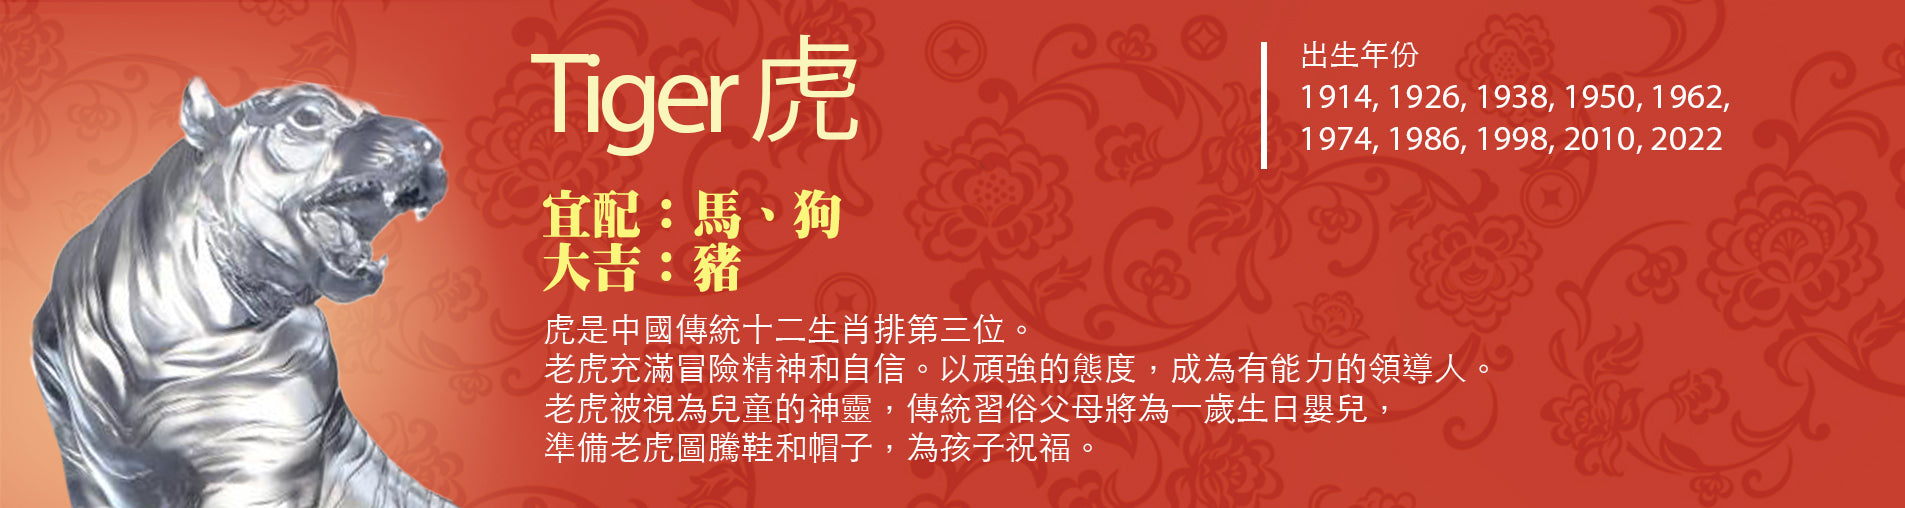 Year of the Tiger | Chinese Zodiac Artwork